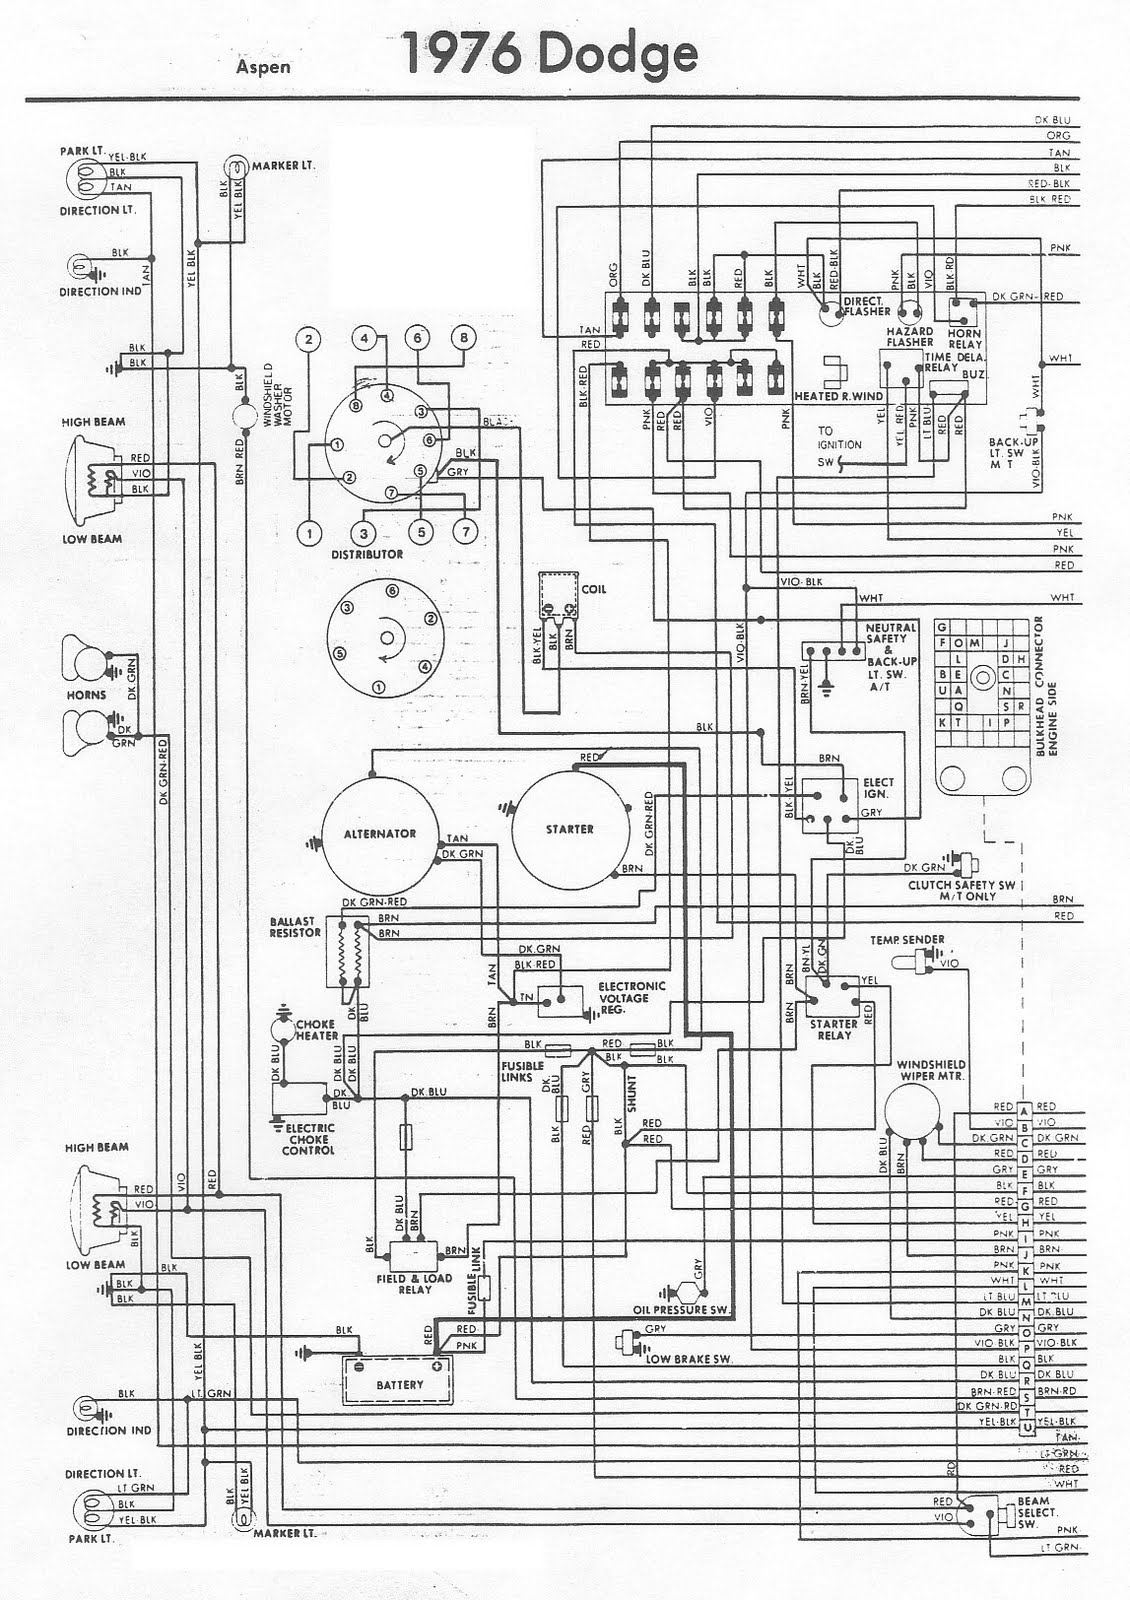 Wiring Diagram For 2008 Chrysler Pacifica Libraries 04 Free Picture Schematic Aspen Simple